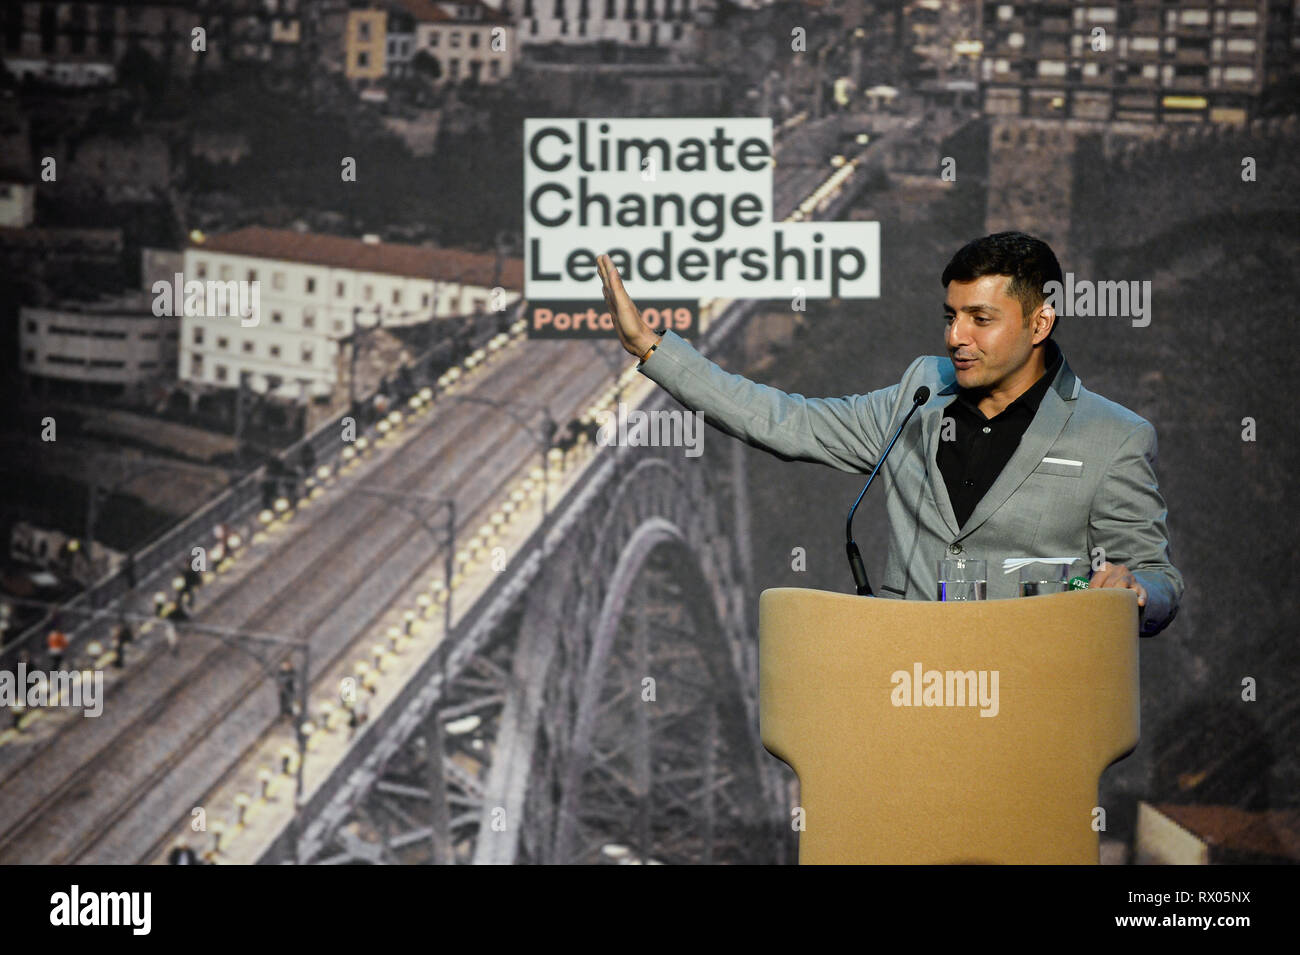 Afroz Shah, Indian Activist seen speaking during the Climate Change Porto Summit at Alfandega Congress Center. - Stock Image